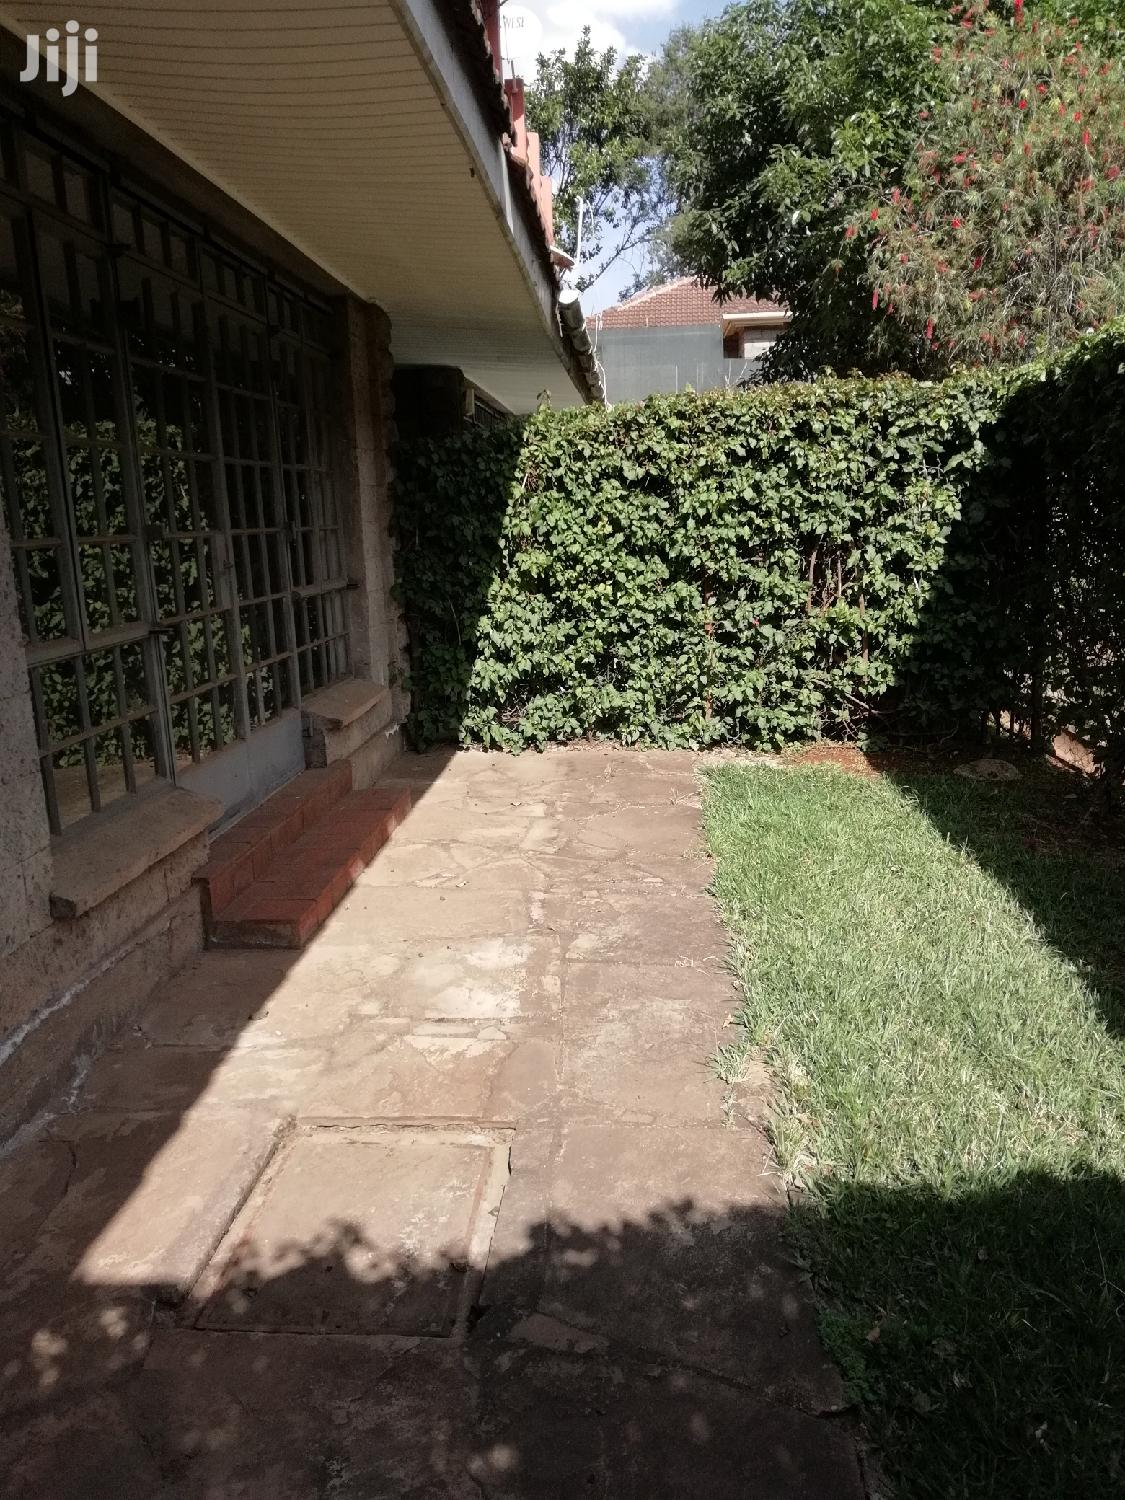 Property World,4brs+Dsq Duplex With Pool,Gym,Lift and Secure | Houses & Apartments For Rent for sale in Kilimani, Nairobi, Kenya